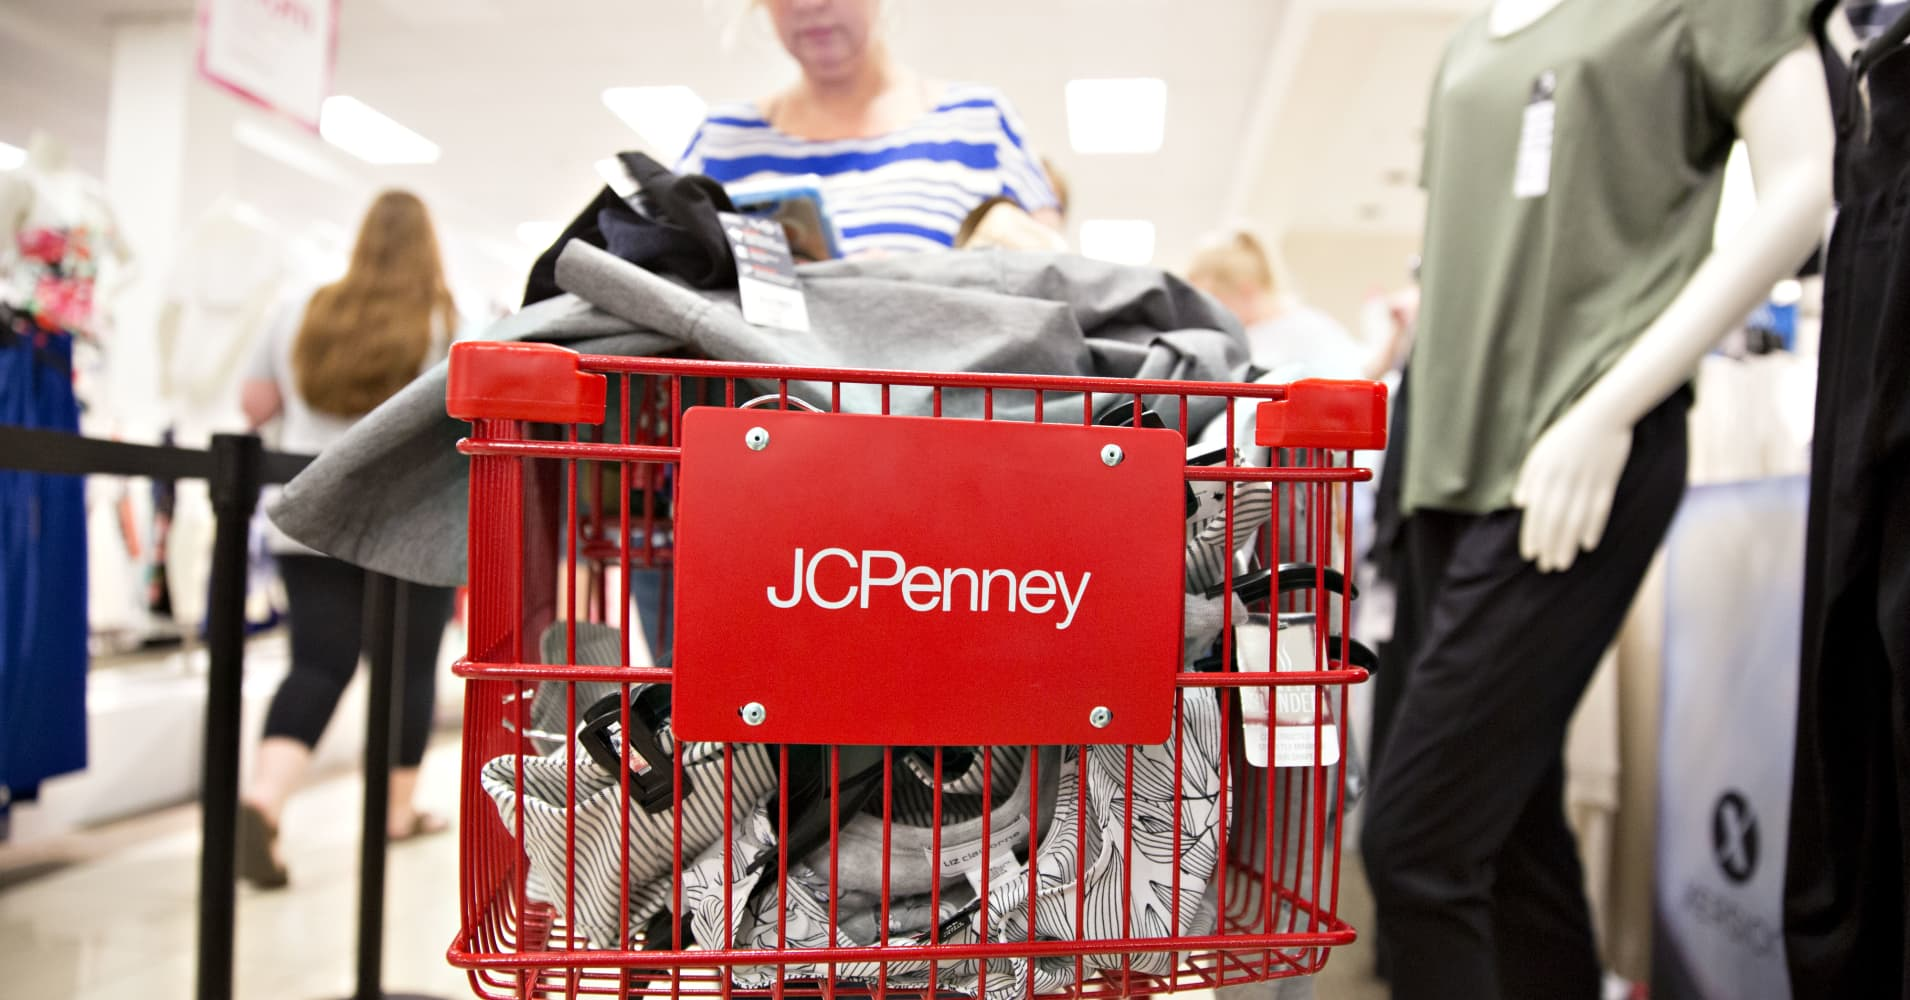 JC Penney shares dive as gross sales fall quick regardless of narrower loss